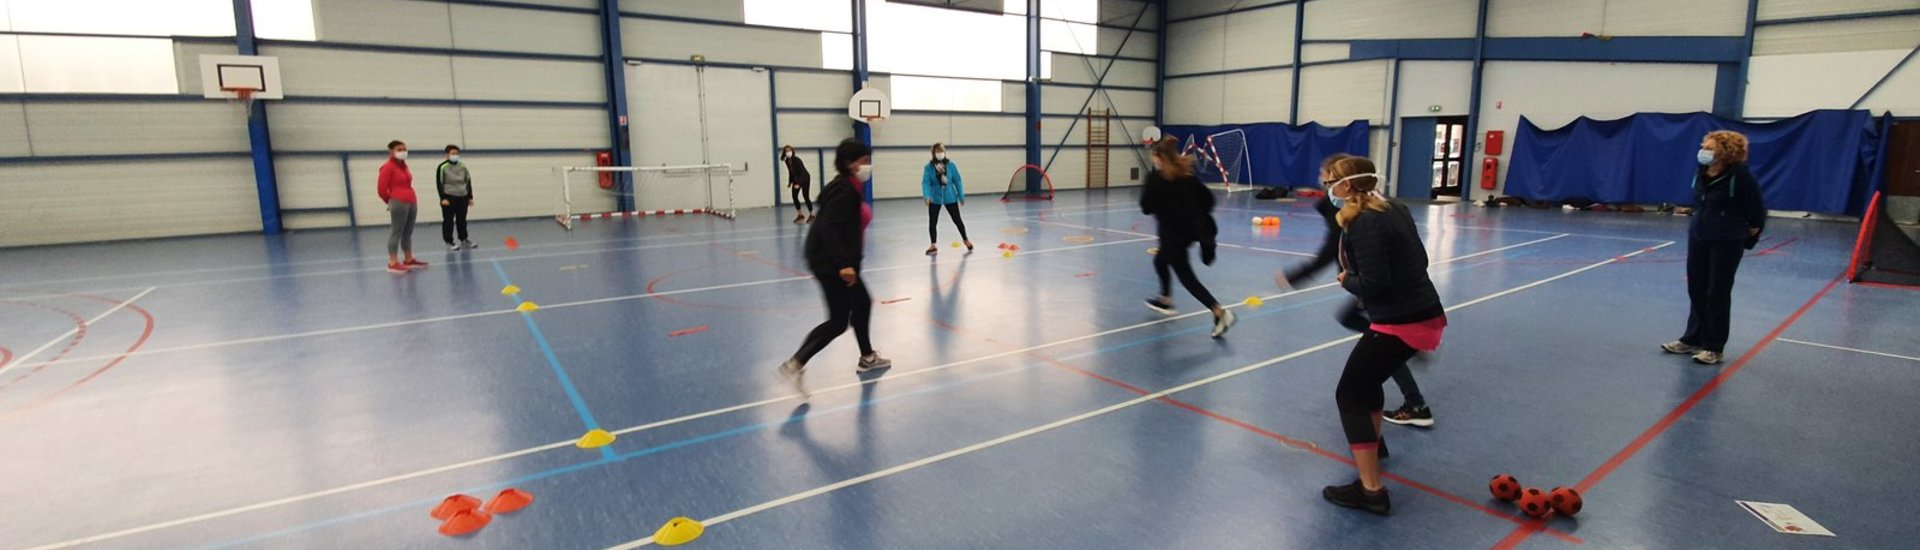 Formation Enseignants Handball C2